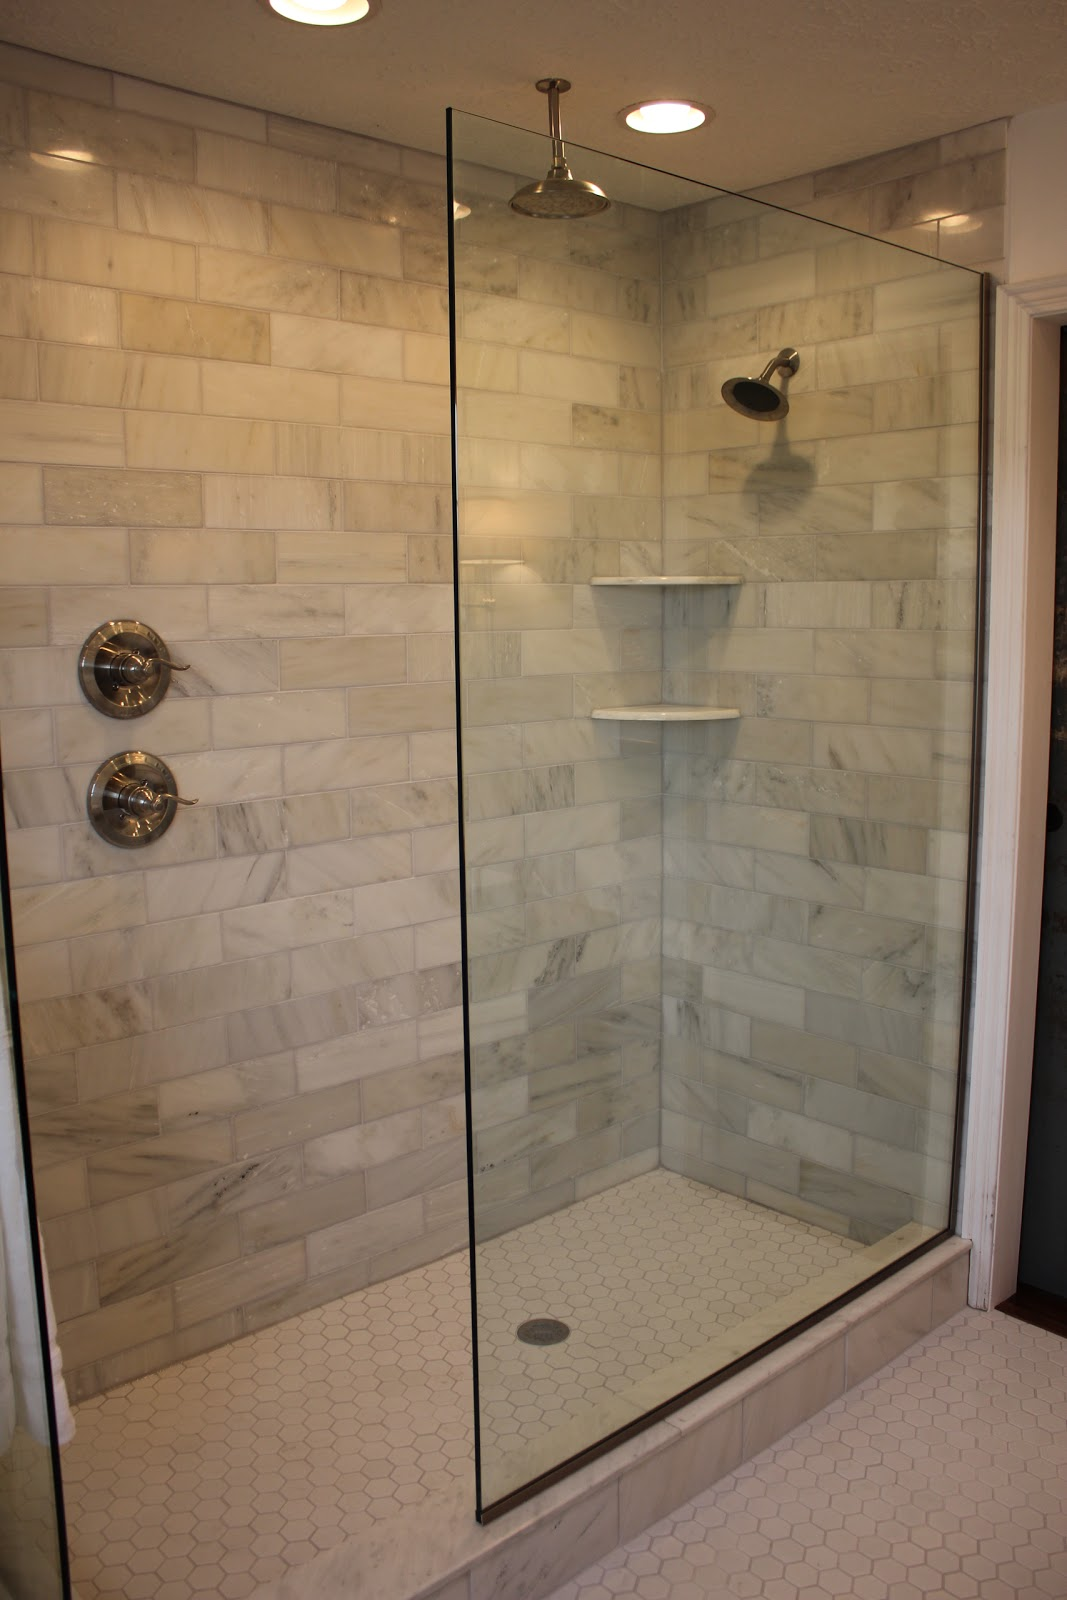 Design decor and remodel projects for Large glass tiles for bathroom